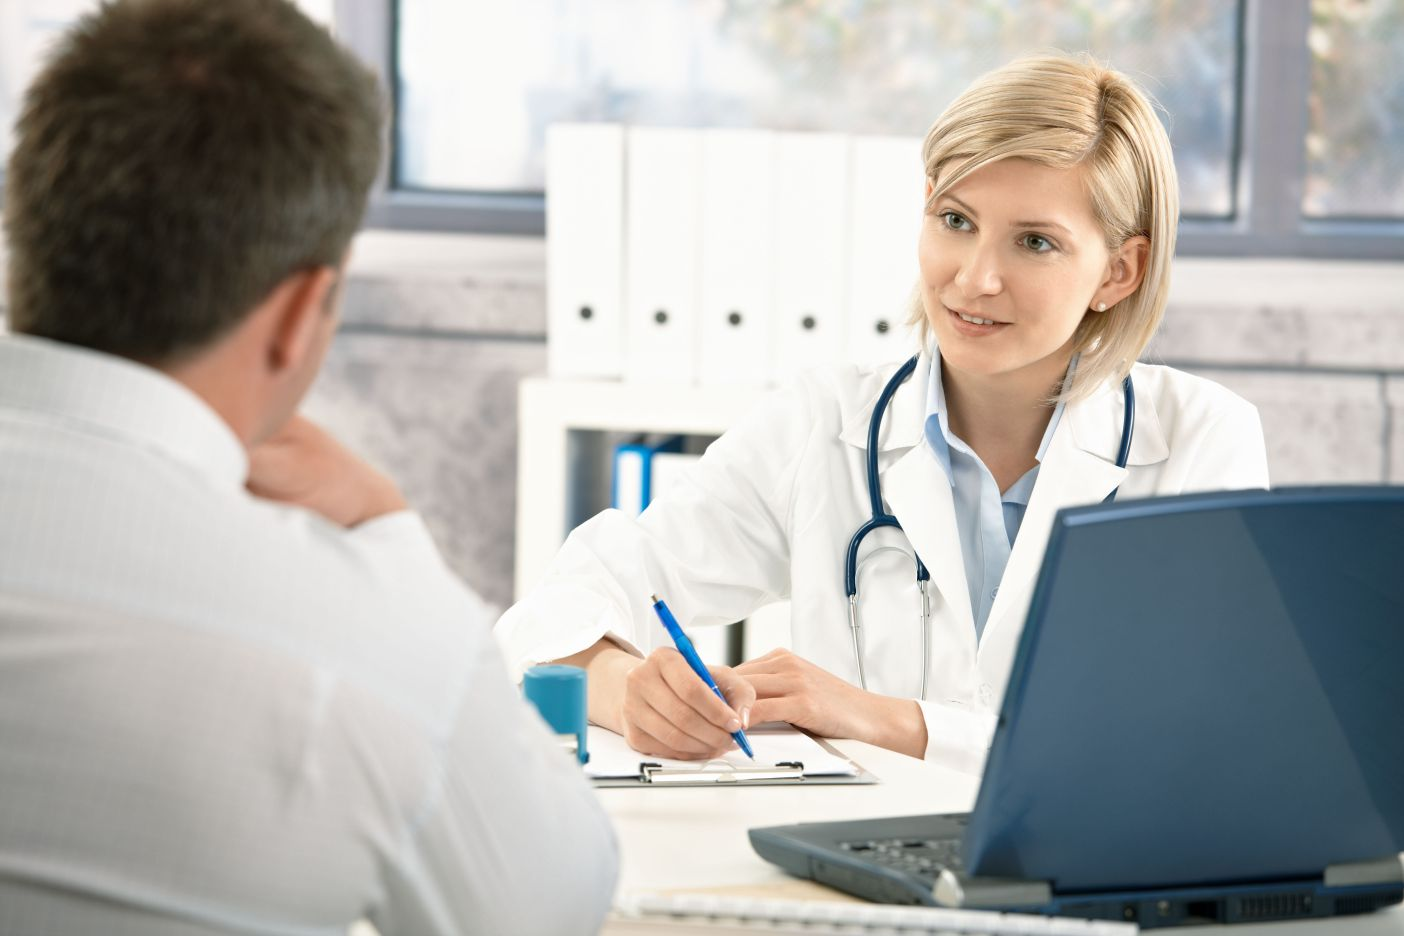 Are you HIPAA-compliant? 4 Things to Look Into